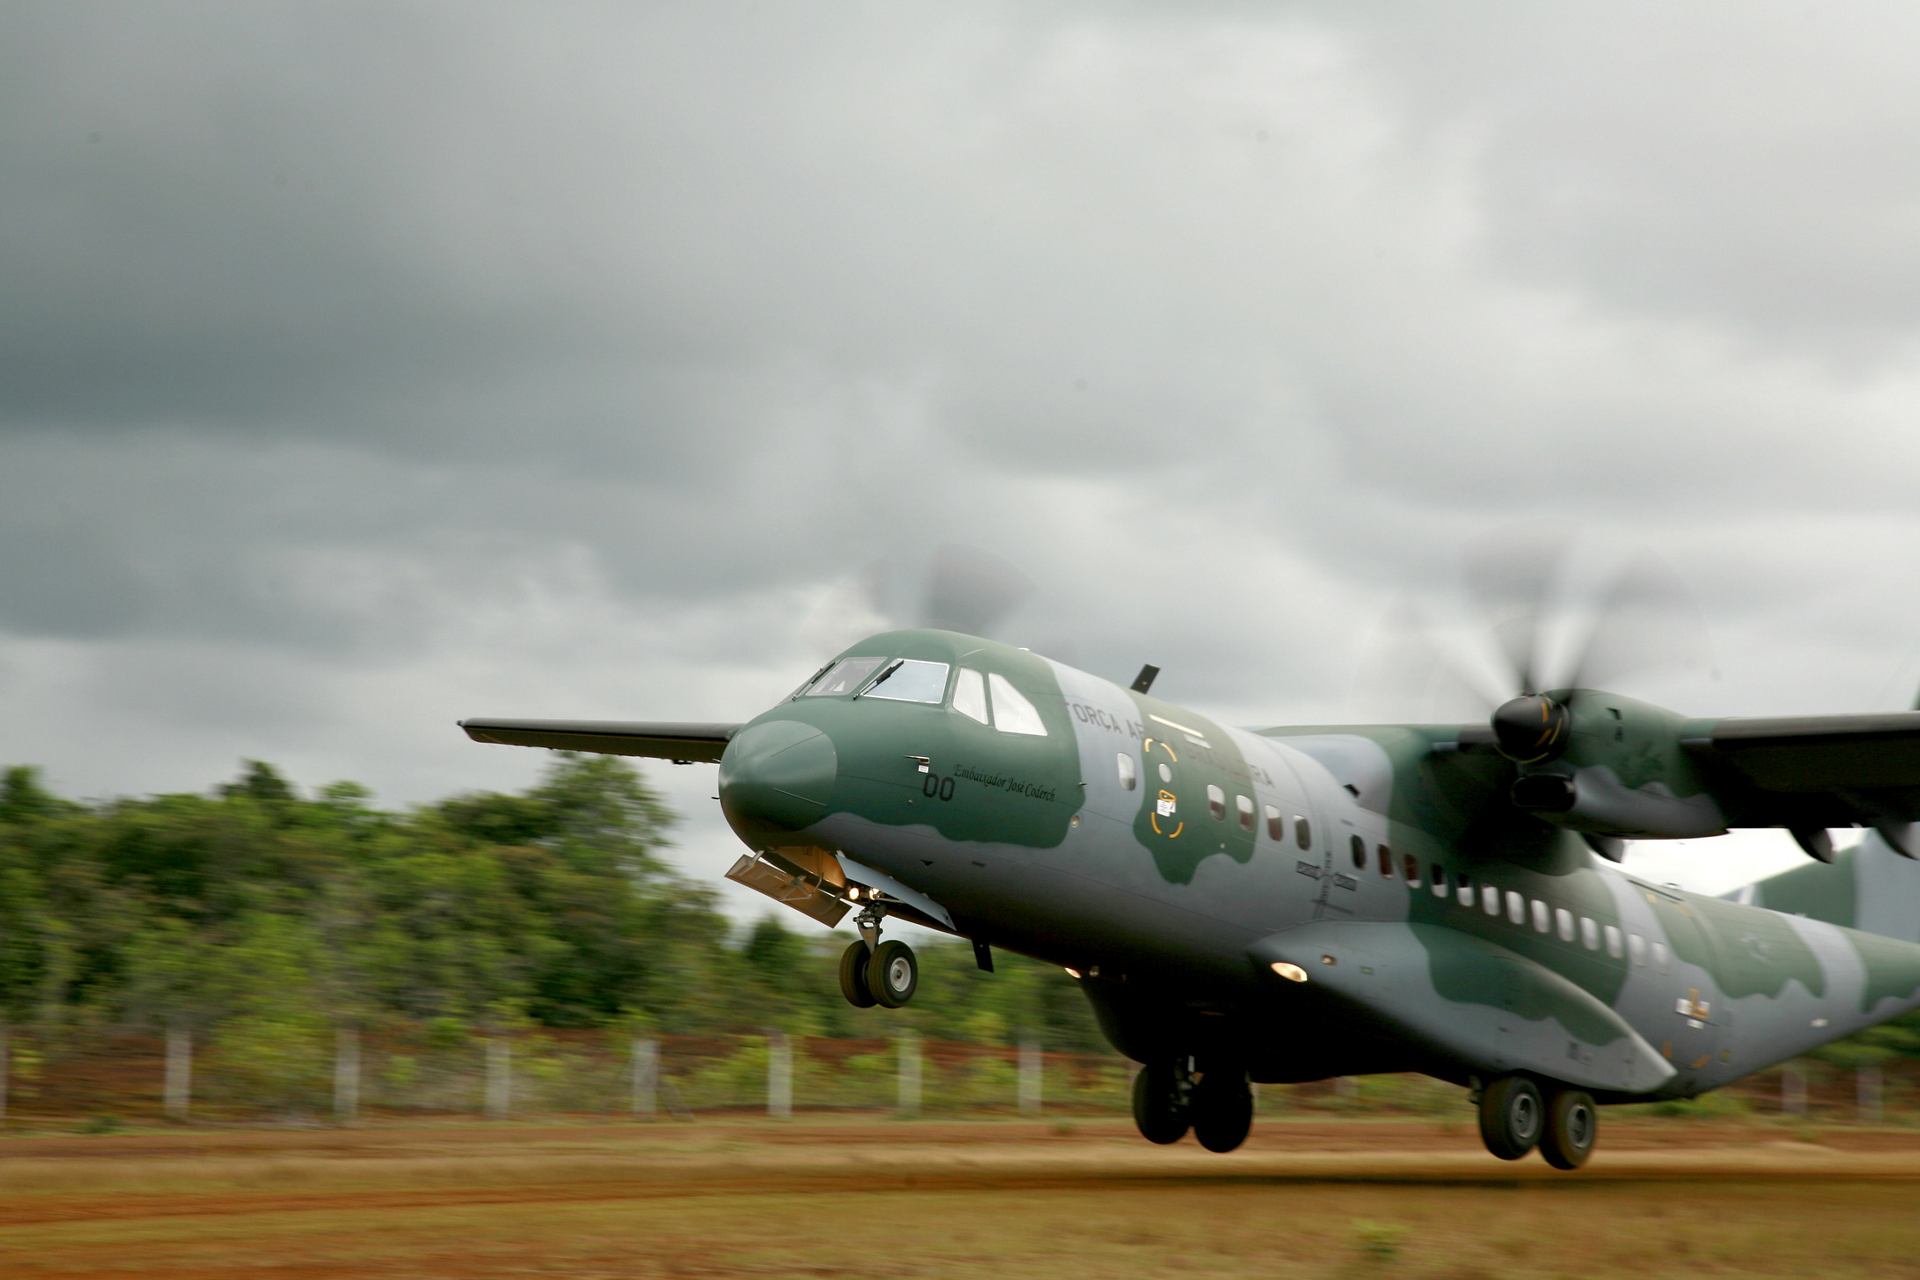 A C295 transport aircraft takes off from a semi-prepared airstrip.